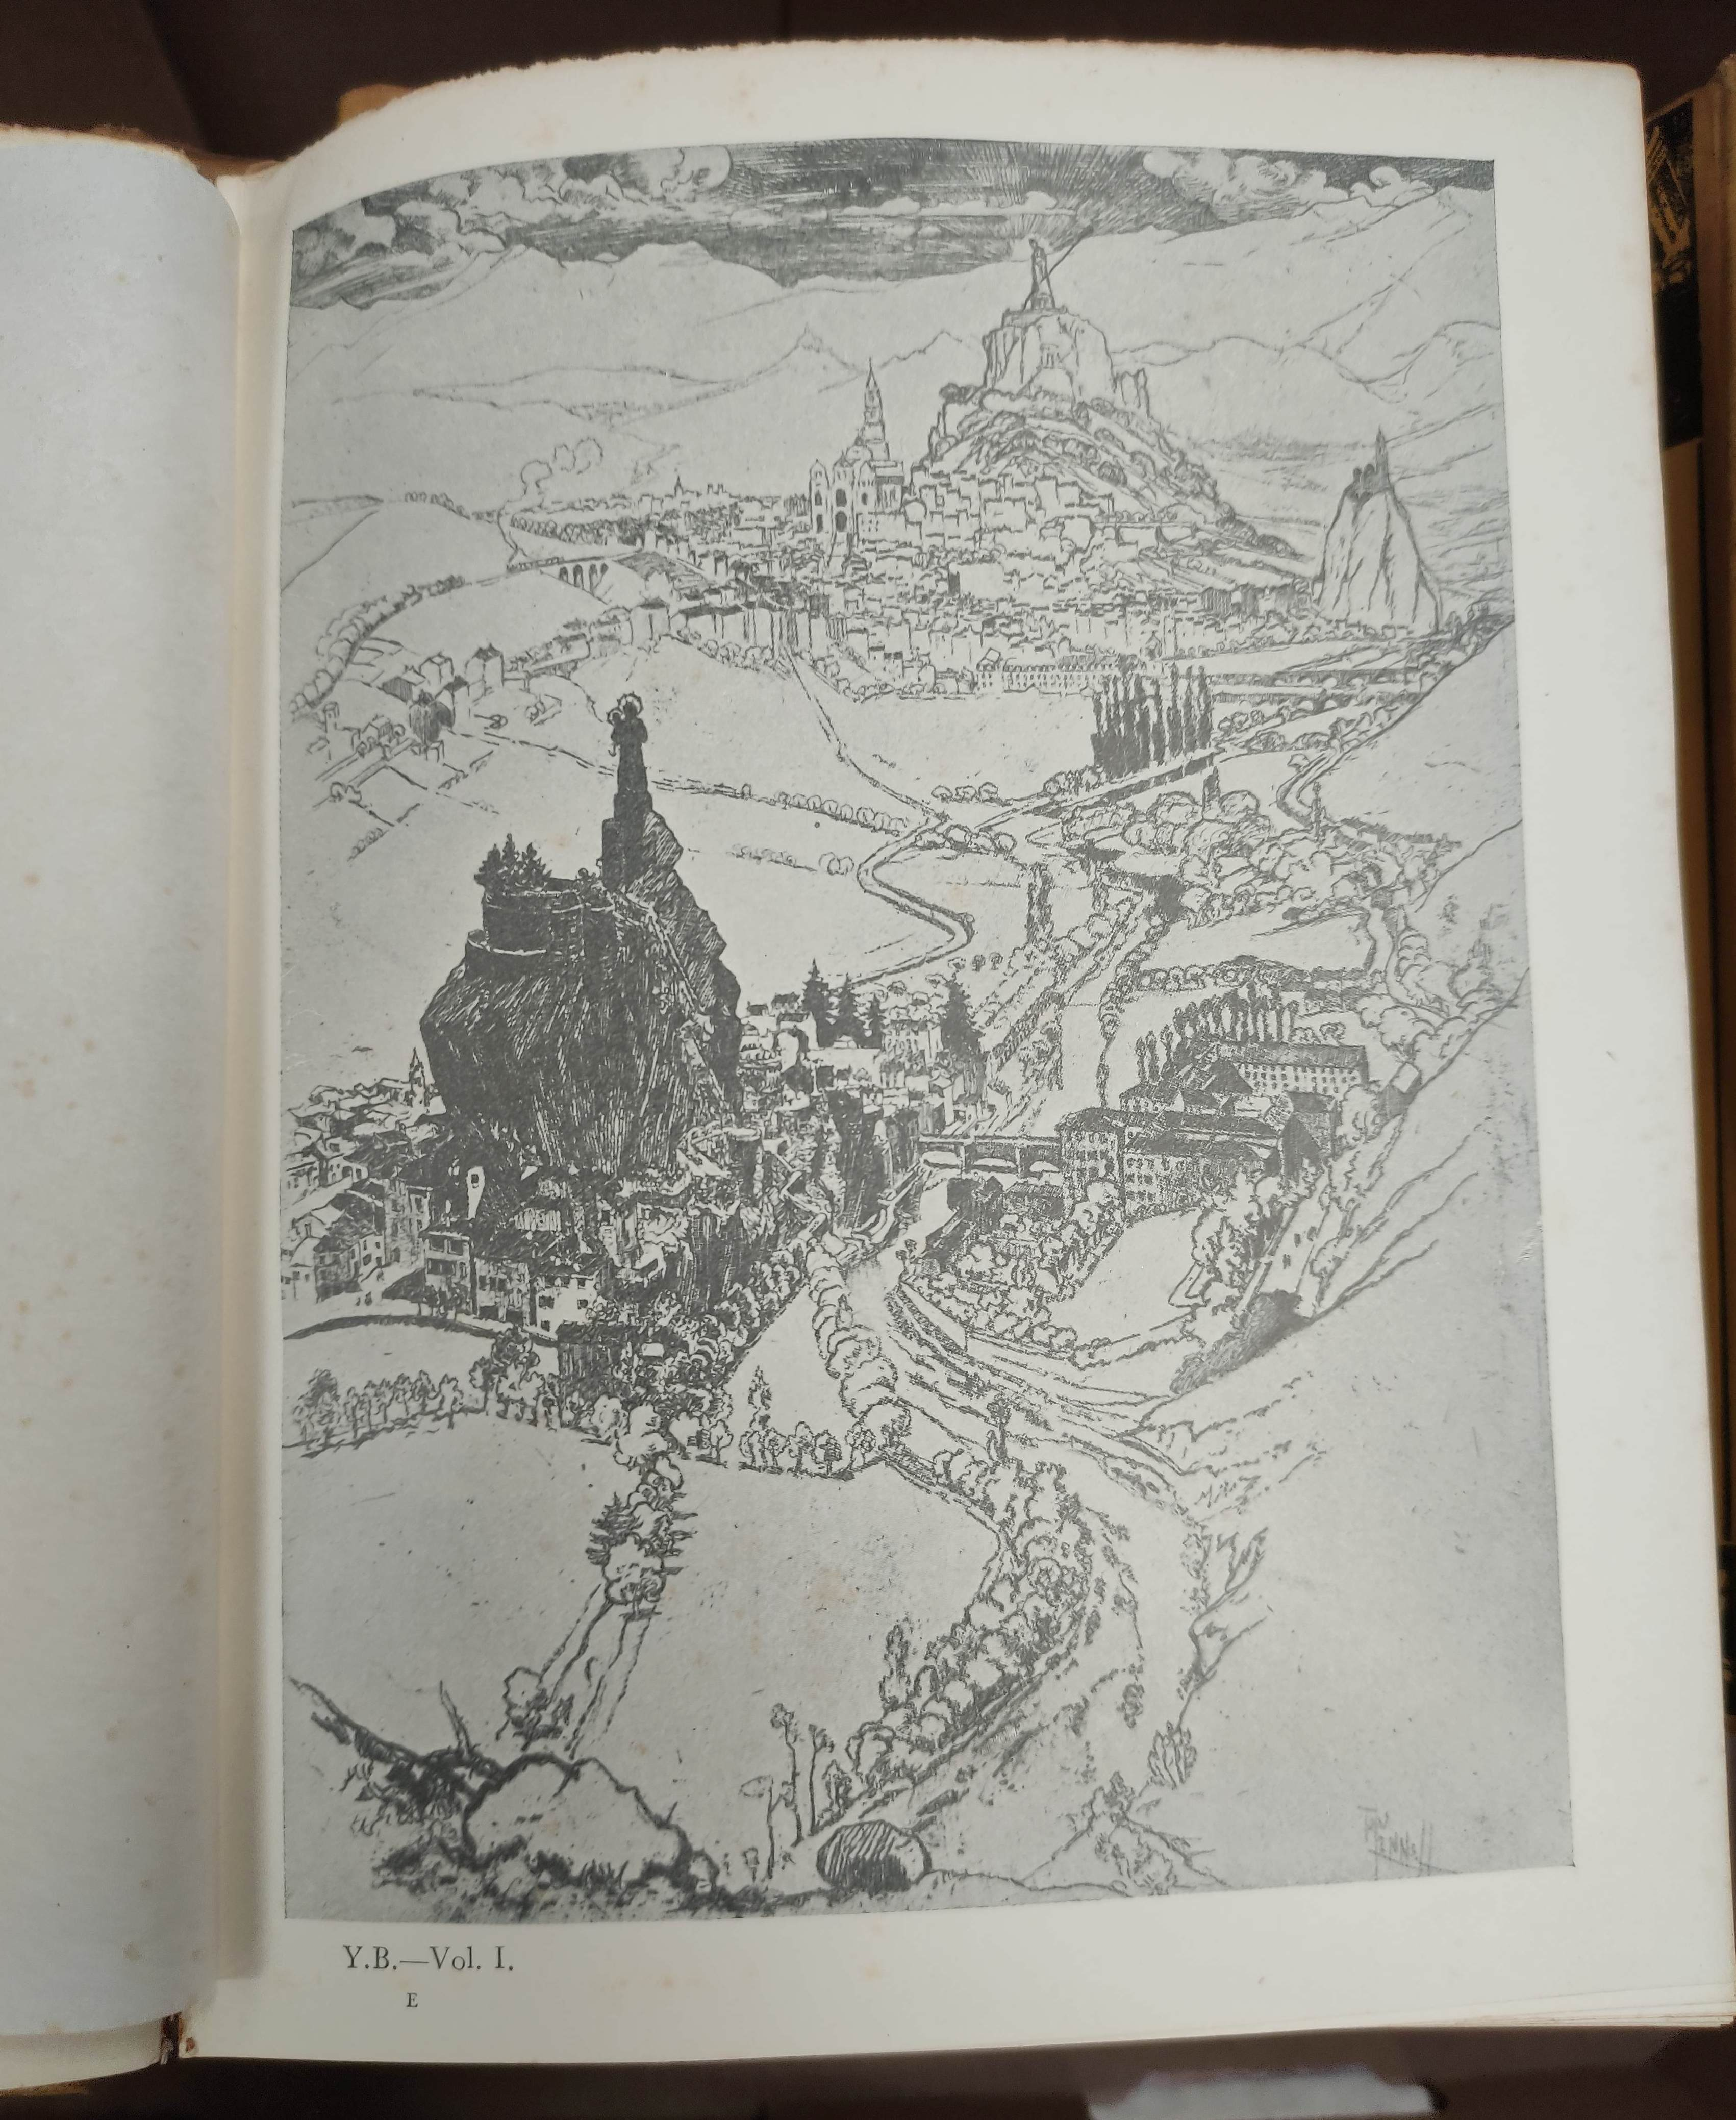 THE YELLOW BOOK.An Illustrated Quarterly. A set of 13 vols., many fine illus. Small quarto. - Image 7 of 45